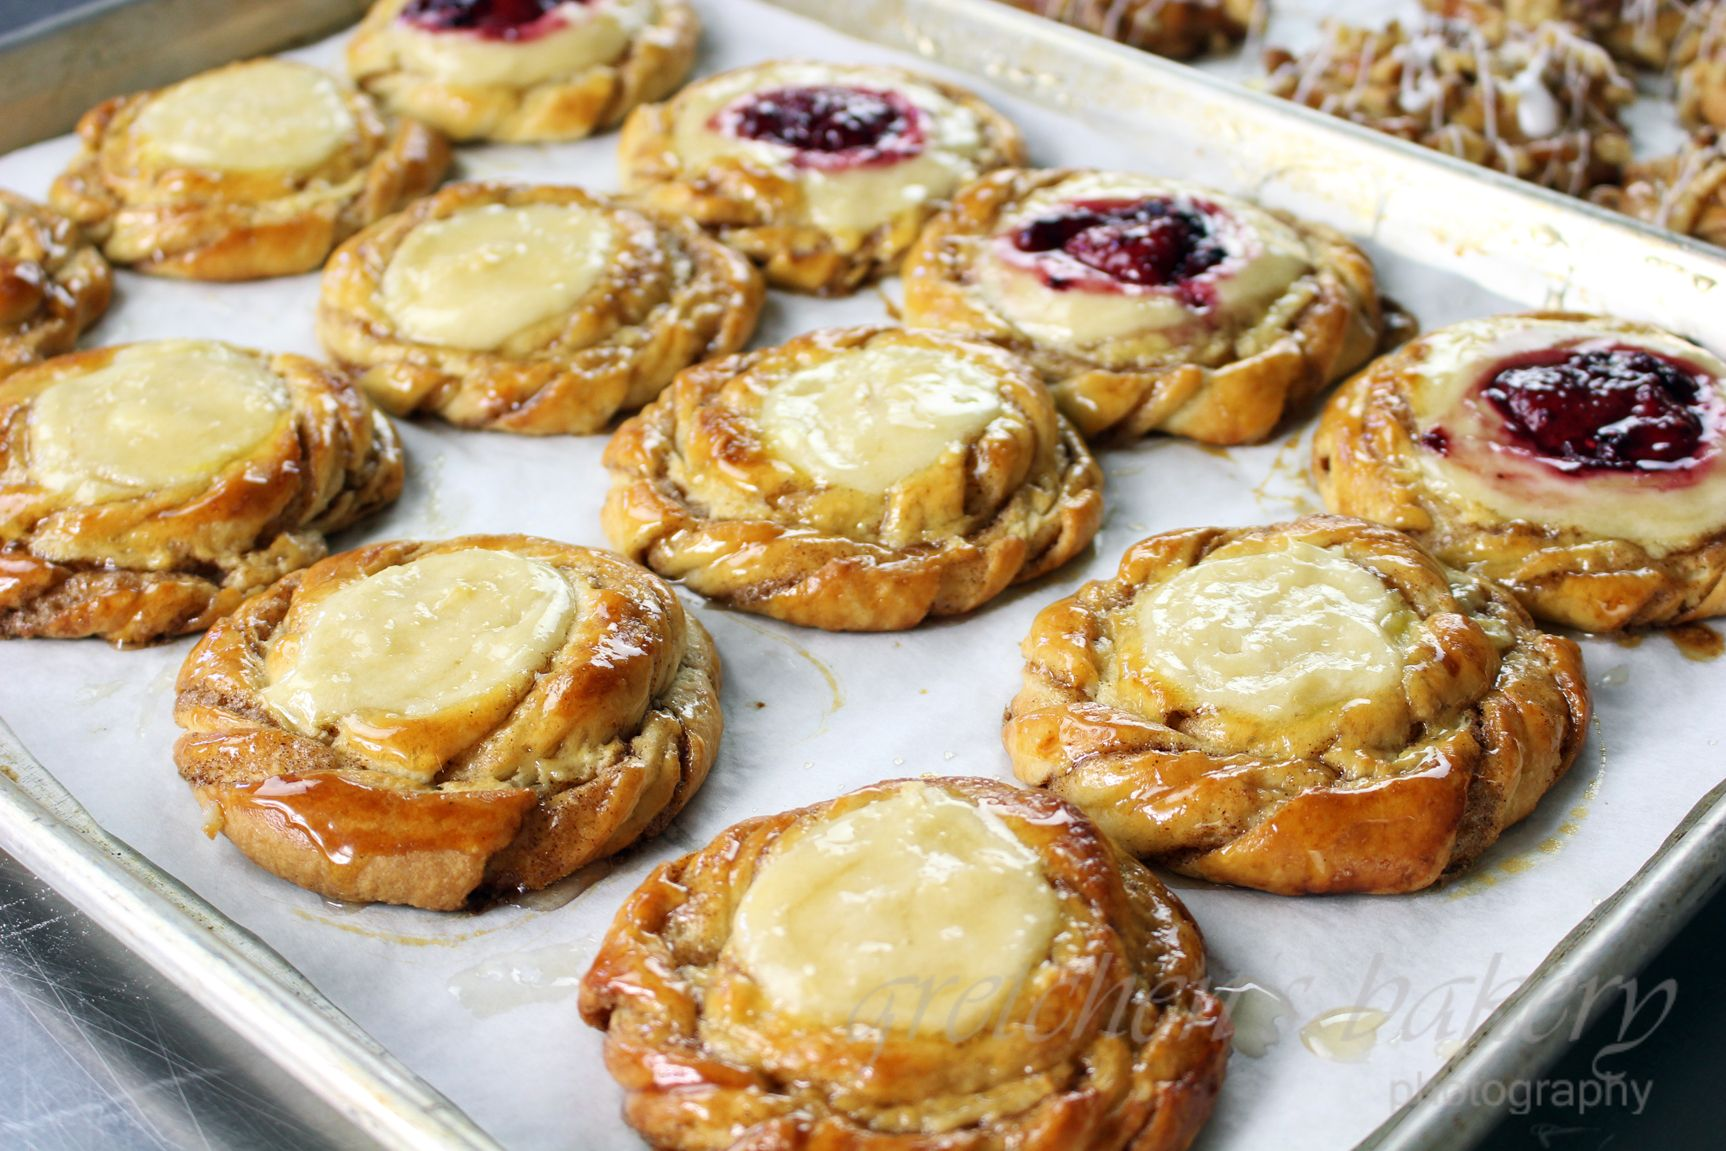 Easy mock danish style dough formed into fruit and cheese danish snails just like the professional bakeries! Fill them with anything you like!